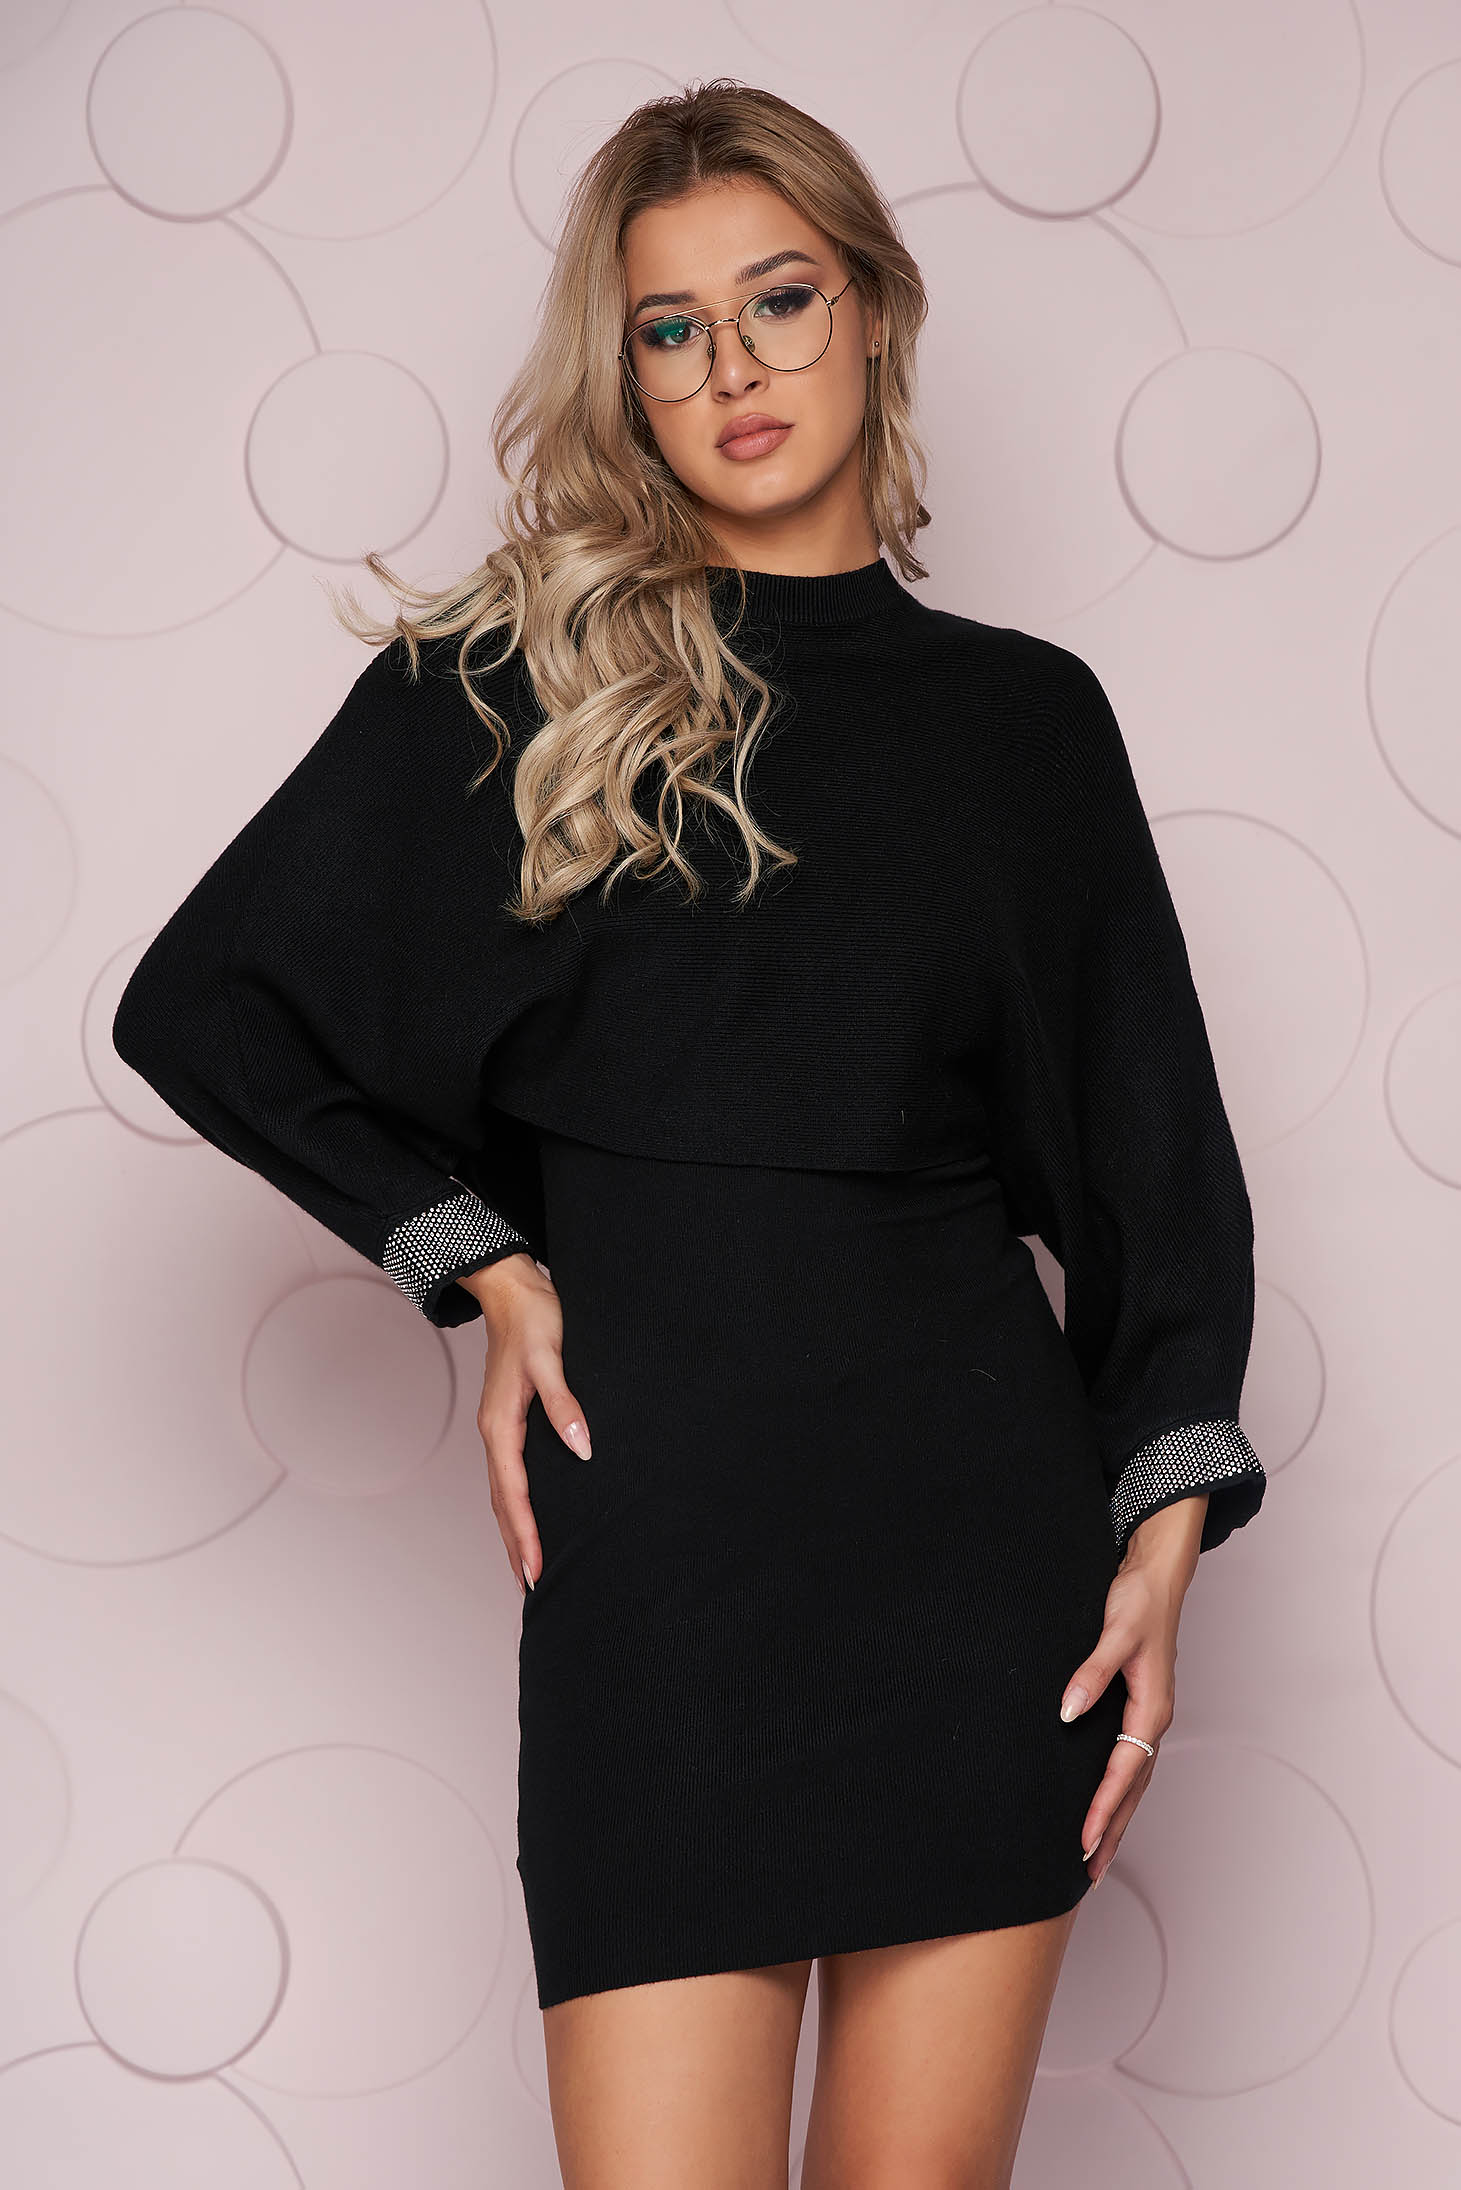 Black dress with crystal embellished details knitted from elastic fabric long sleeve